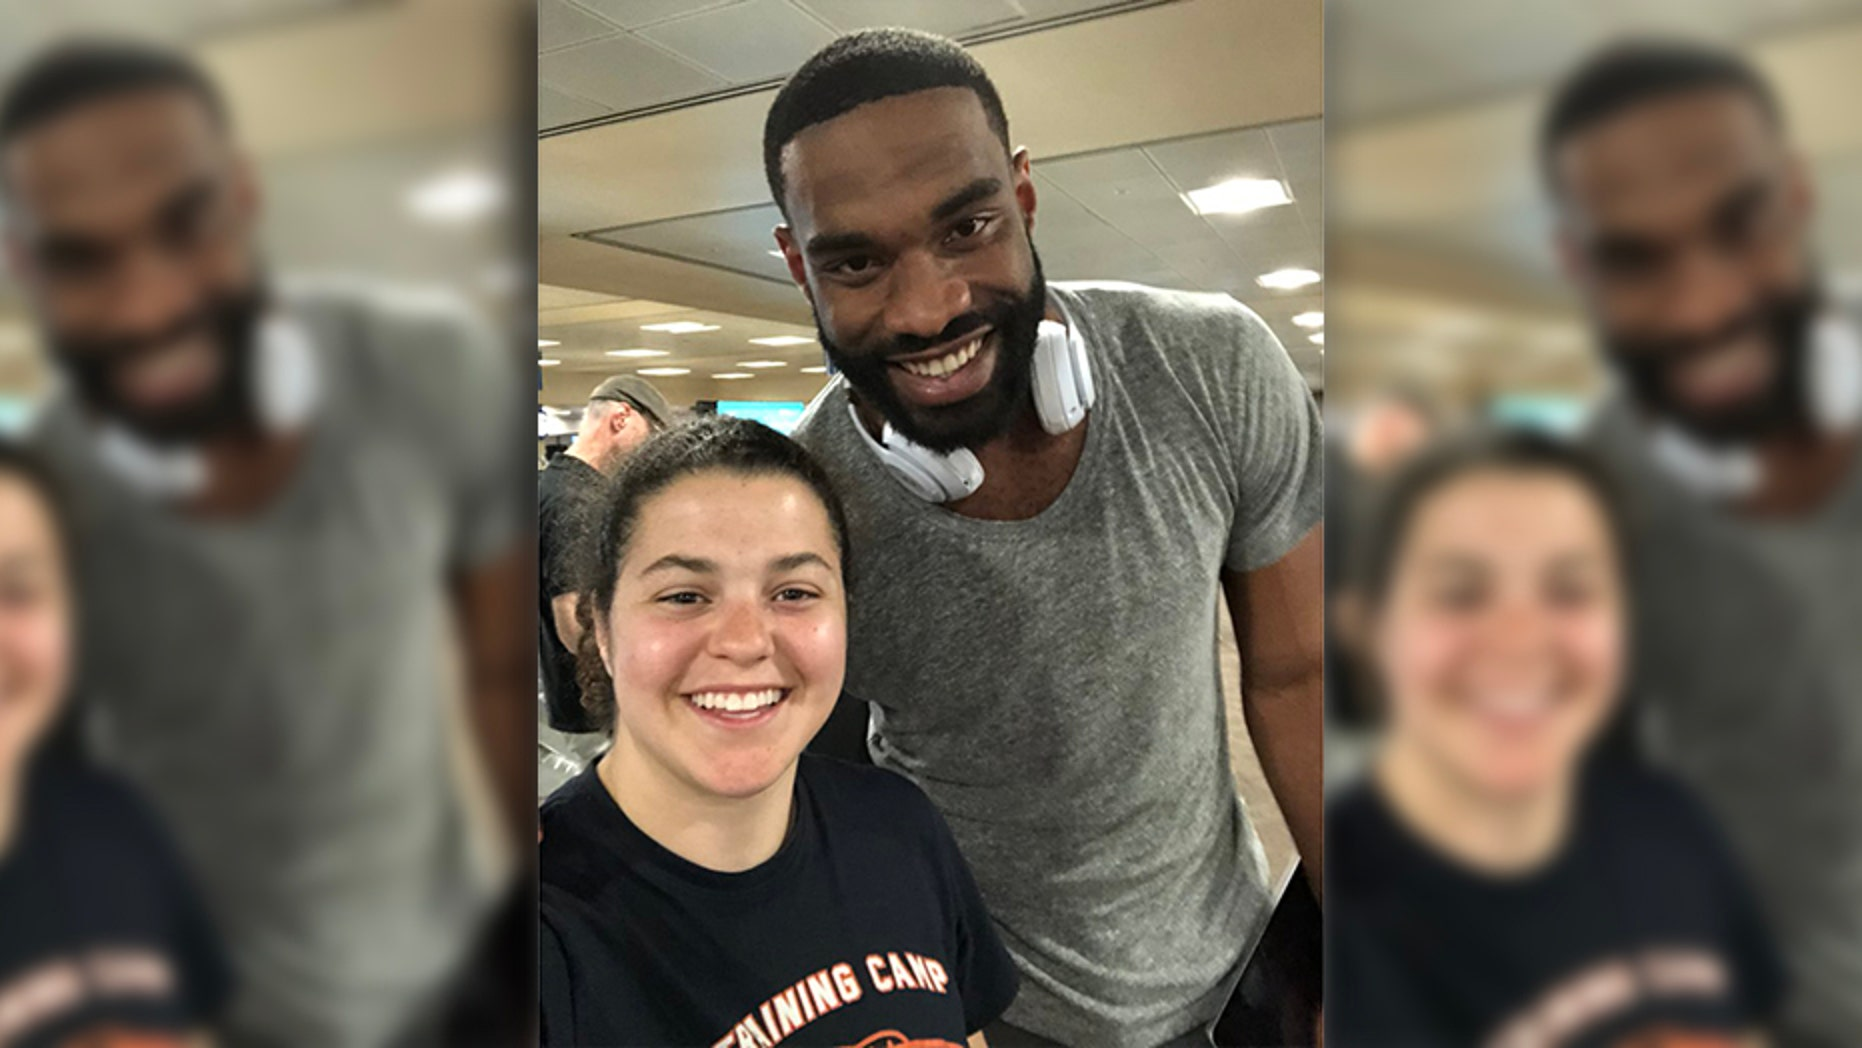 Delilah Cassidy almost missed her flight. Then Jermaine Gresham offered to pay her bag fee.